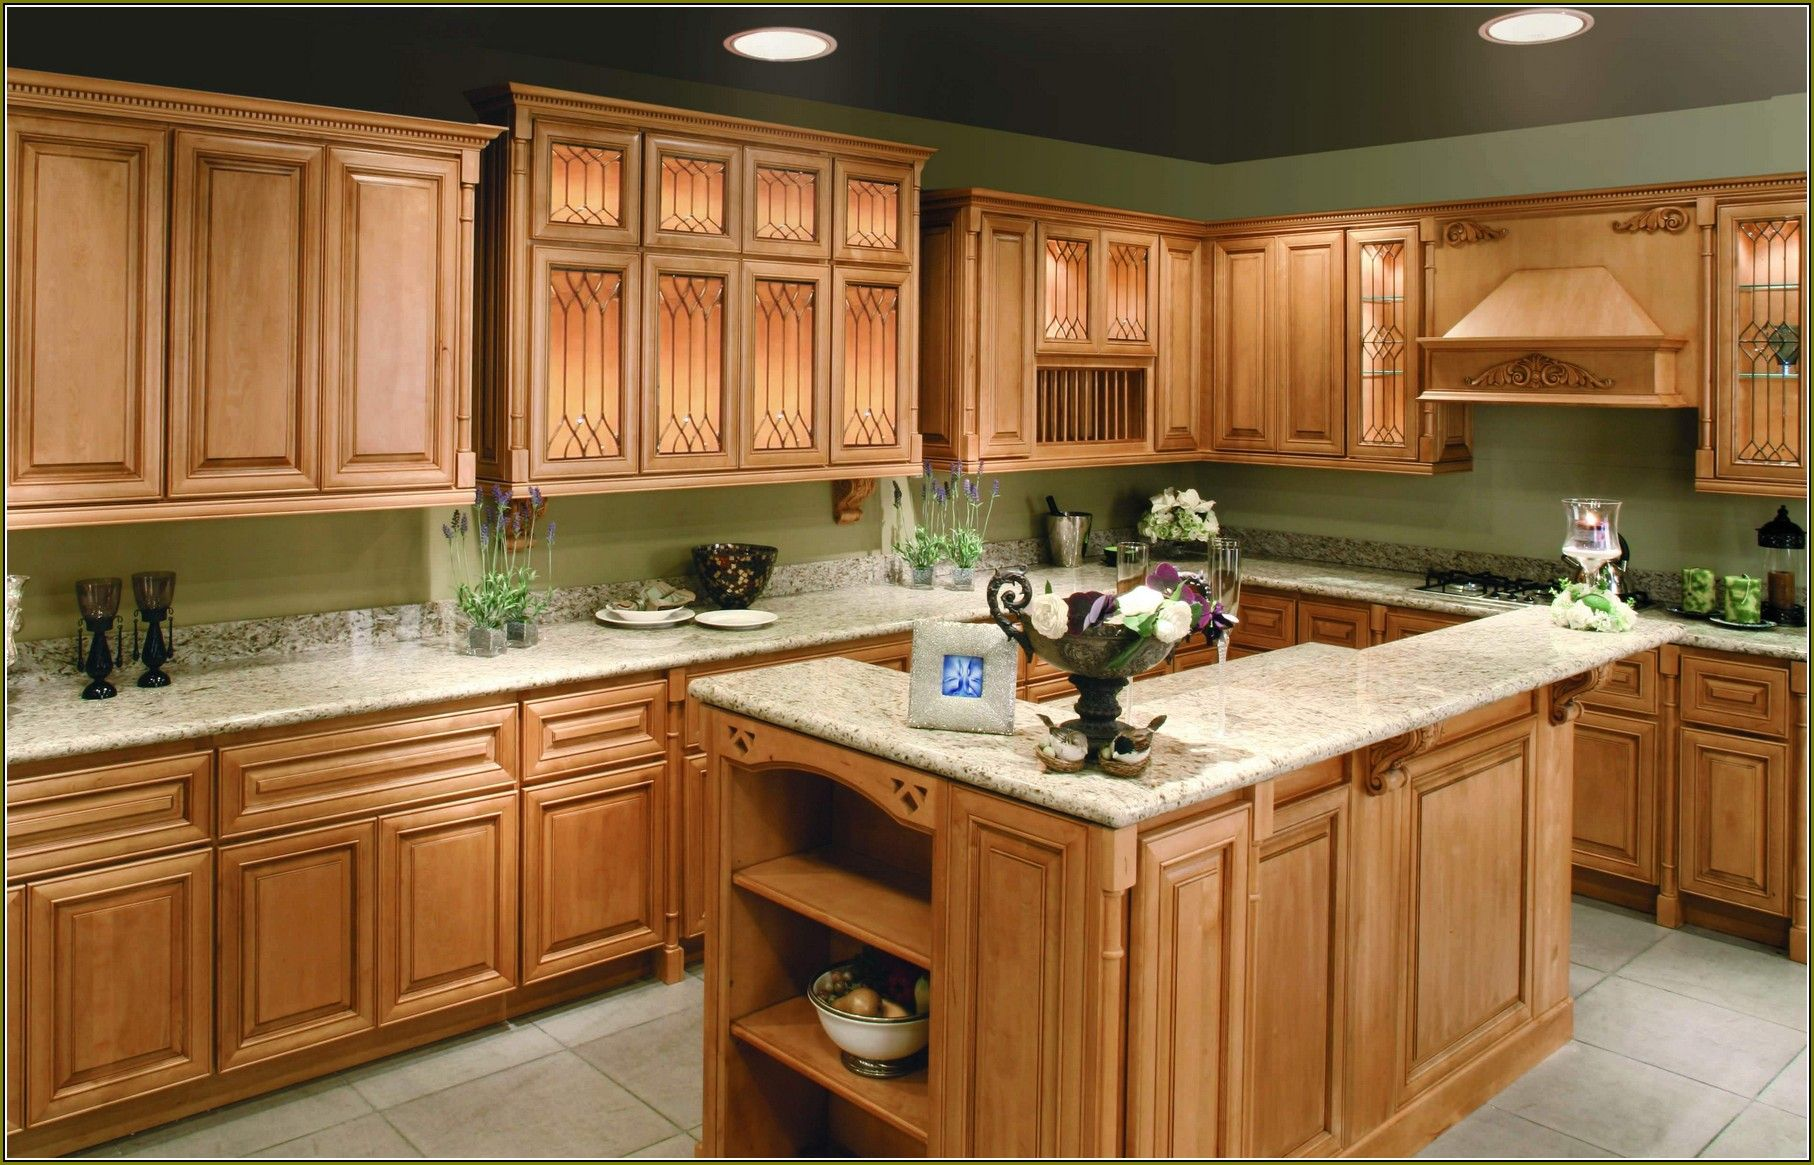 Awesome Maple Cabinets With Granite Countertops Home ... on What Color Granite Goes With Maple Cabinets  id=56326